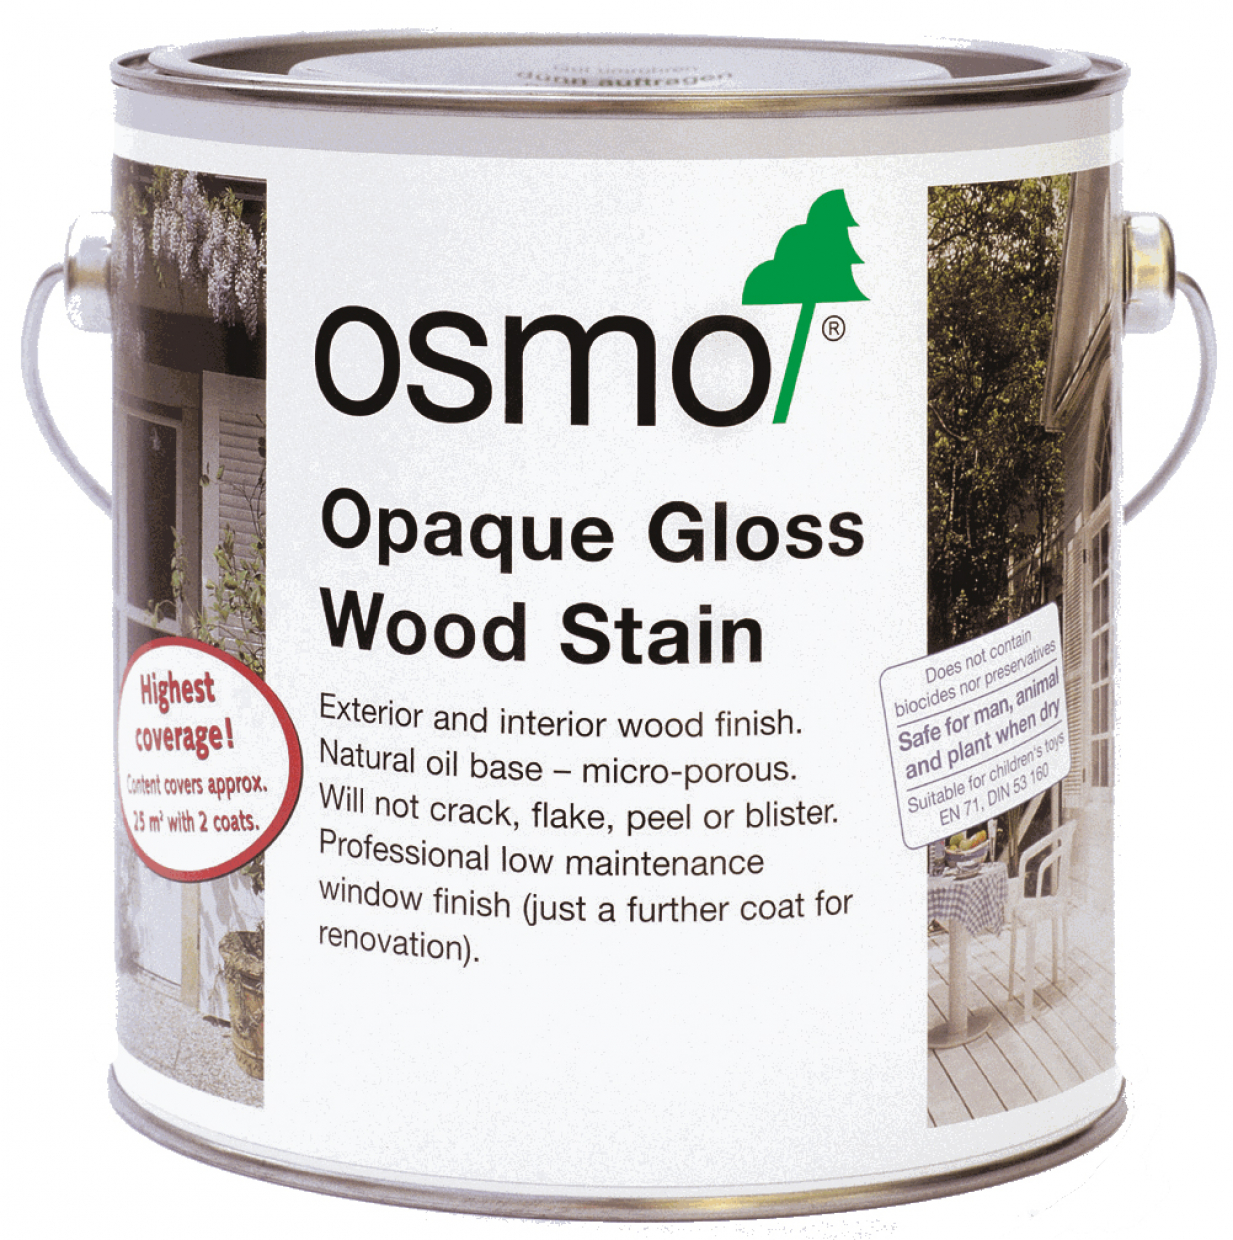 OSMO WHITE GLOSS (OPAQUE WOOD STAIN) 2104